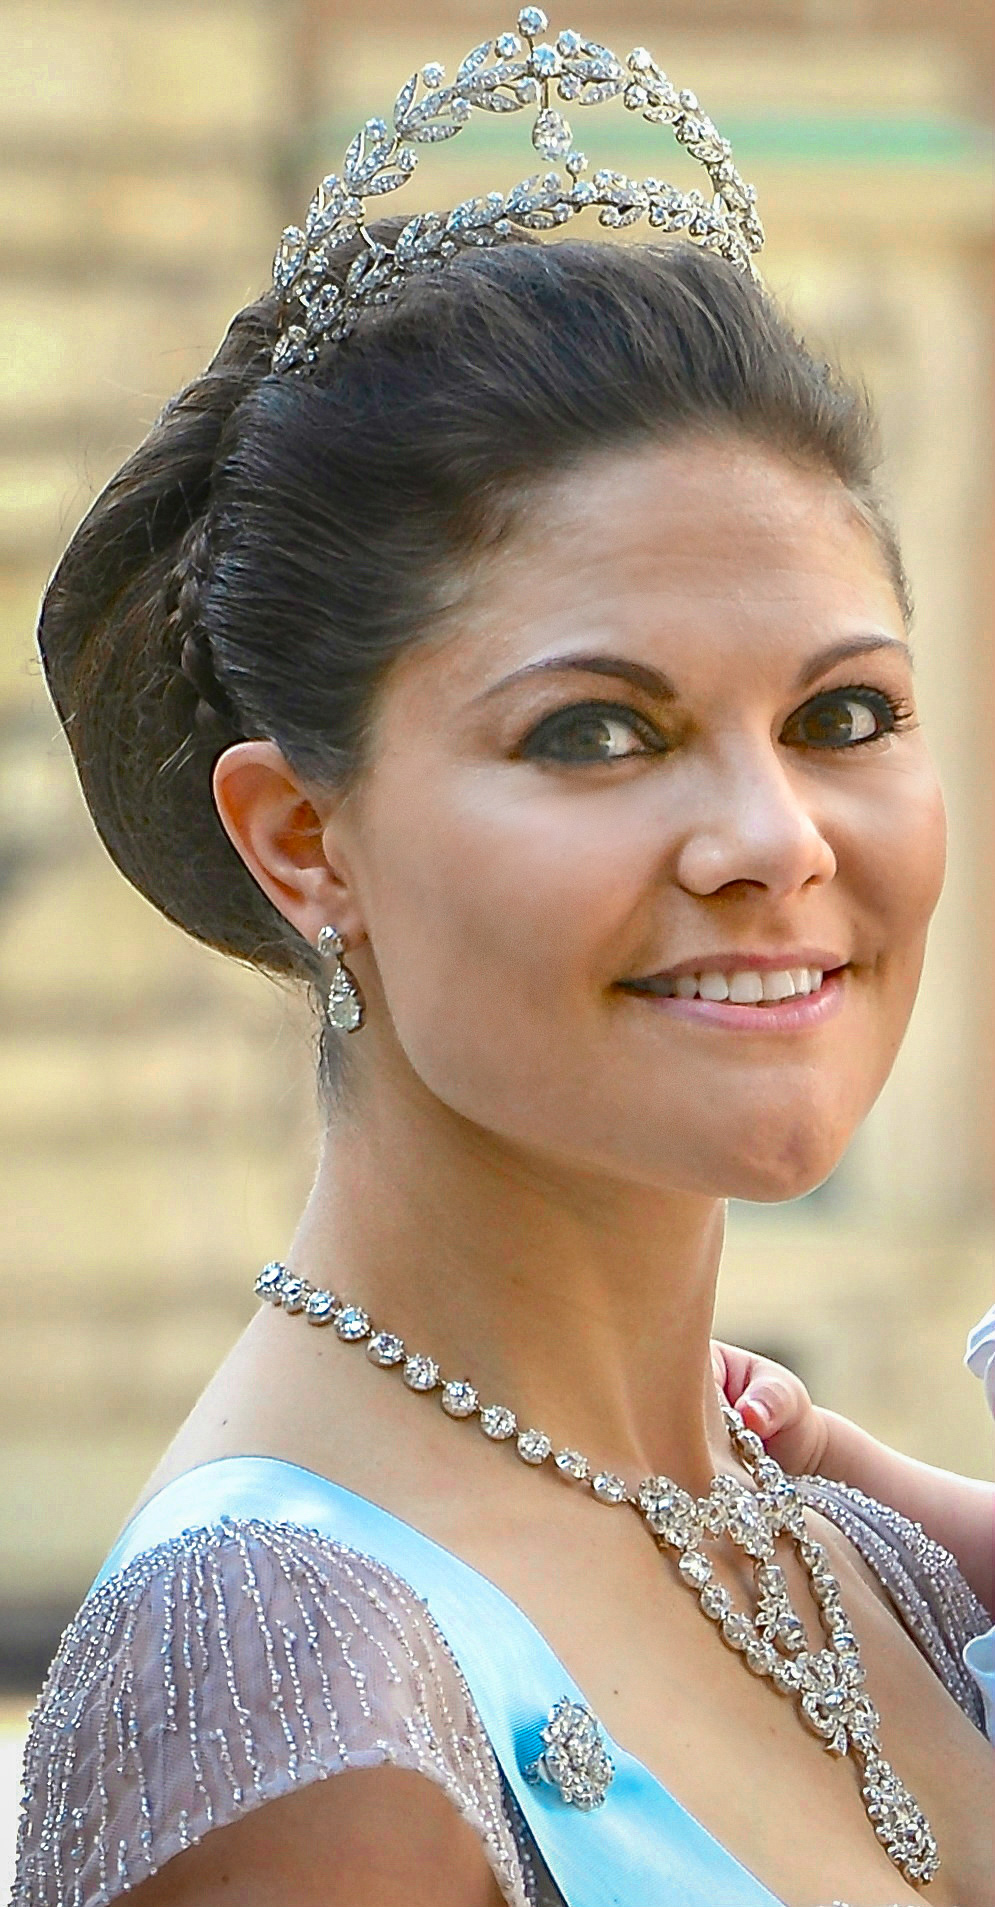 file crown princess victoria june 8 2013 cropped jpg wikimedia commons. Black Bedroom Furniture Sets. Home Design Ideas